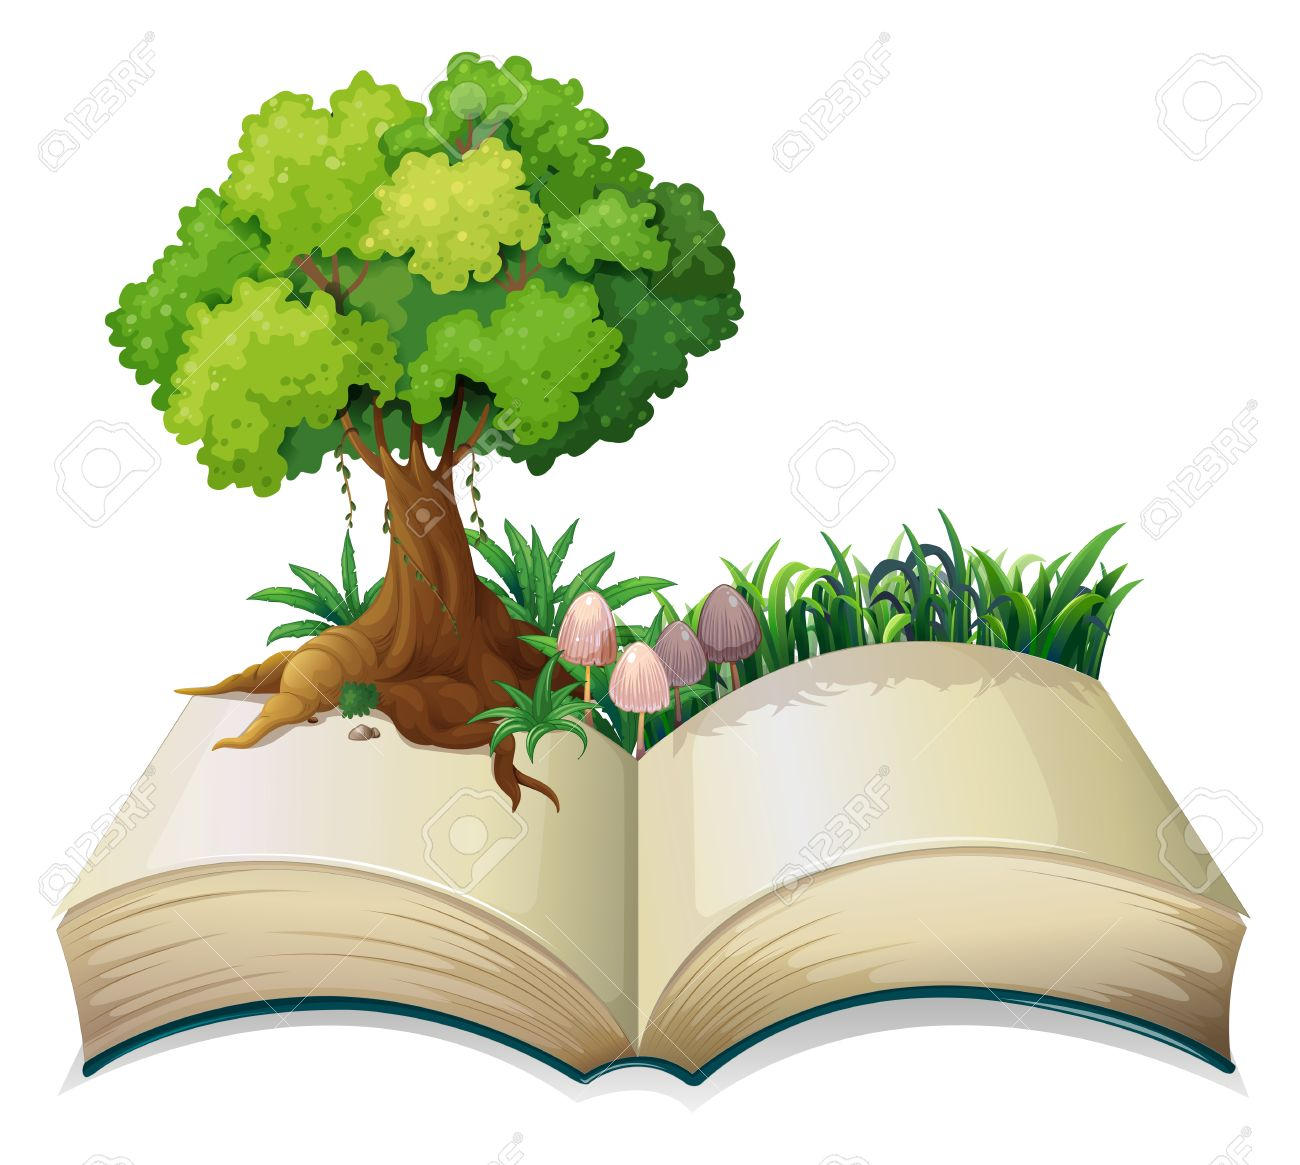 Illustration of an open book with a tree on a white background Stock Vector - 28193790